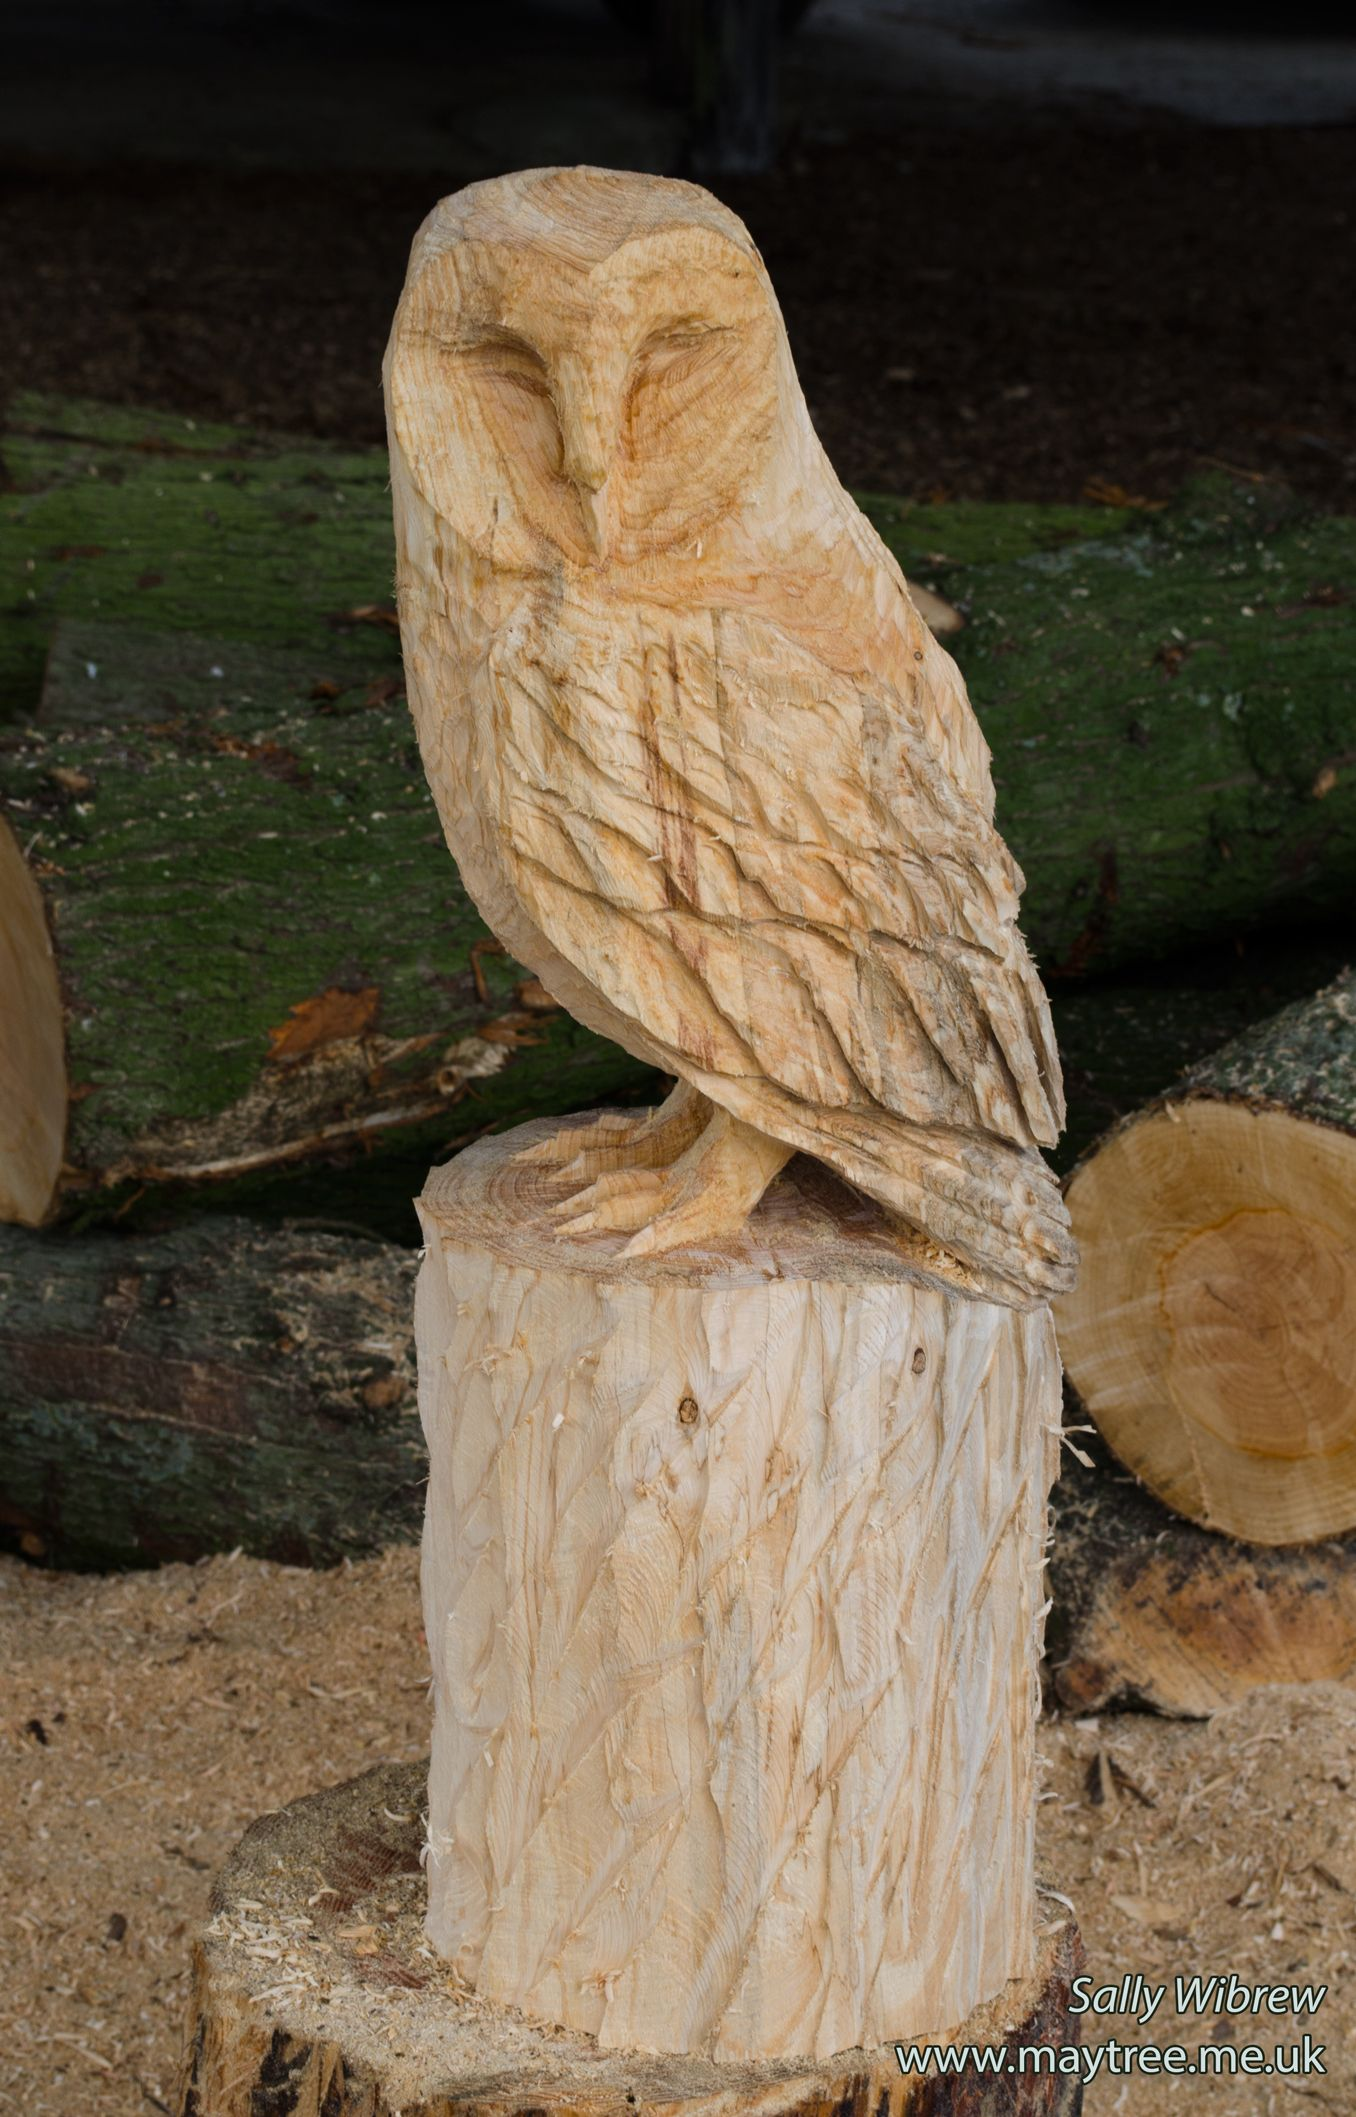 Working on another sleeping barn owl woodworking sculpture